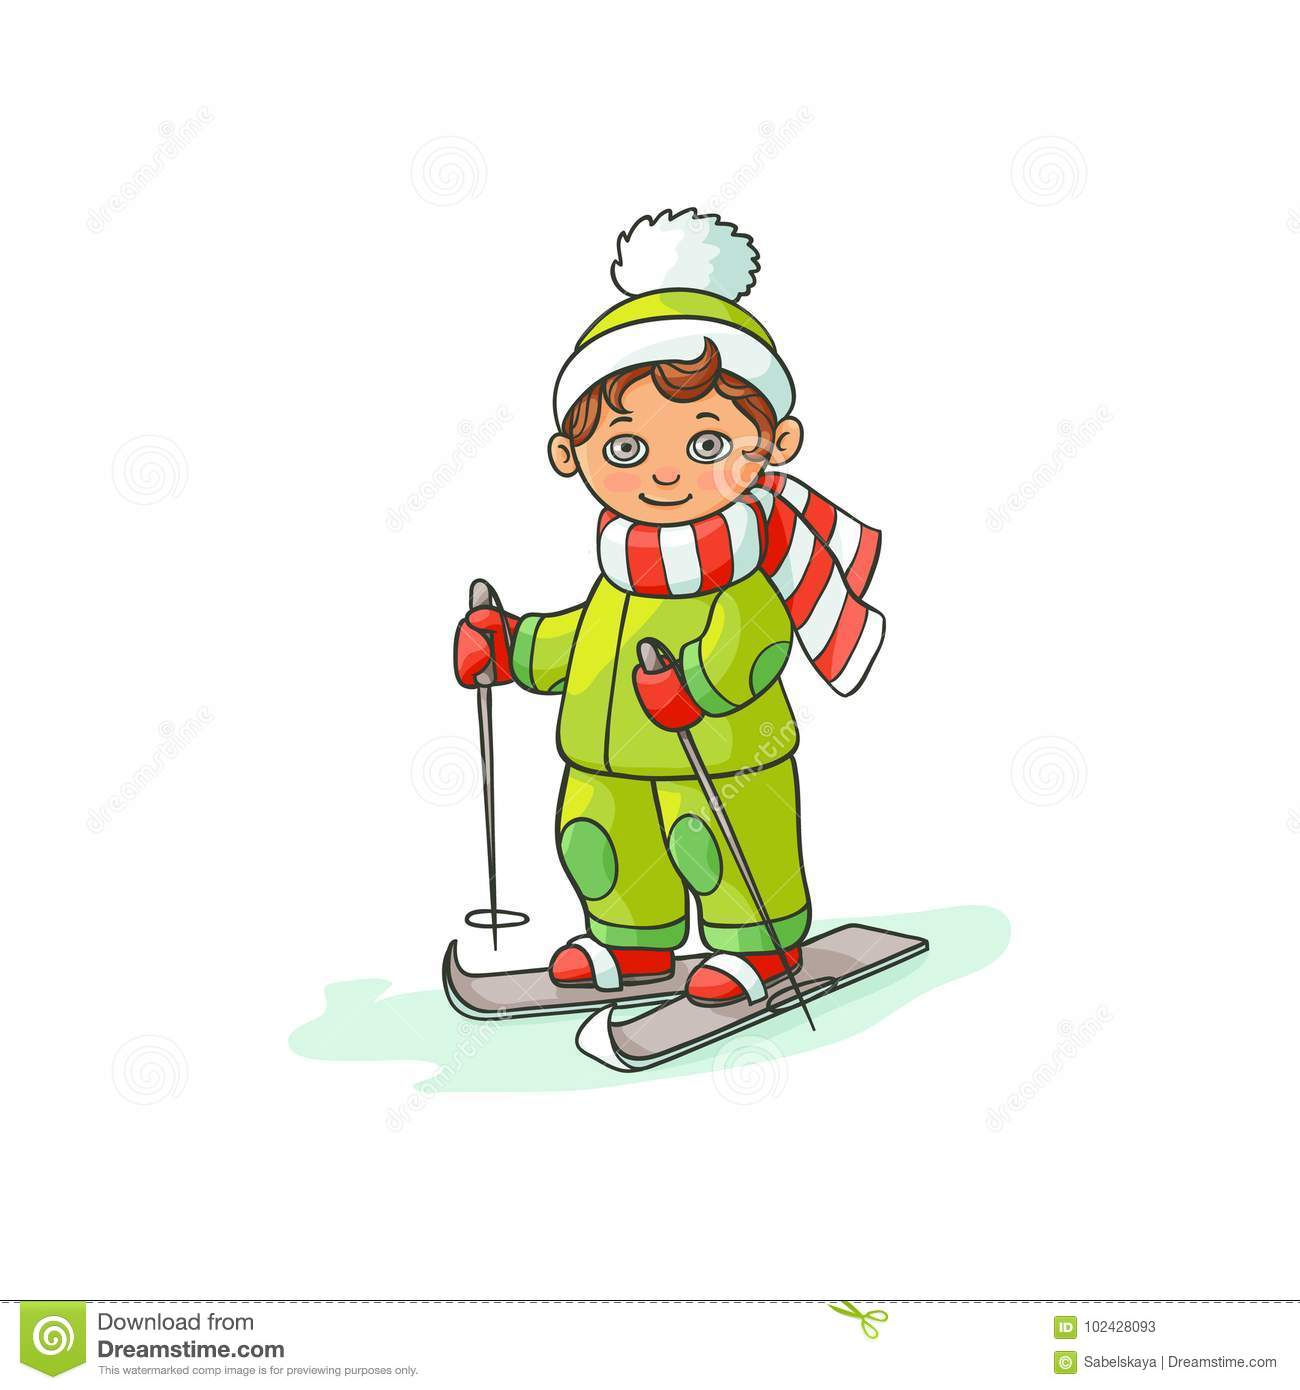 07670c1f9d Vector flat cartoon teen boy kid having fun skiing in winter outdoor  clothing and funny hat and scarf. Isolated illustration on a white  background.